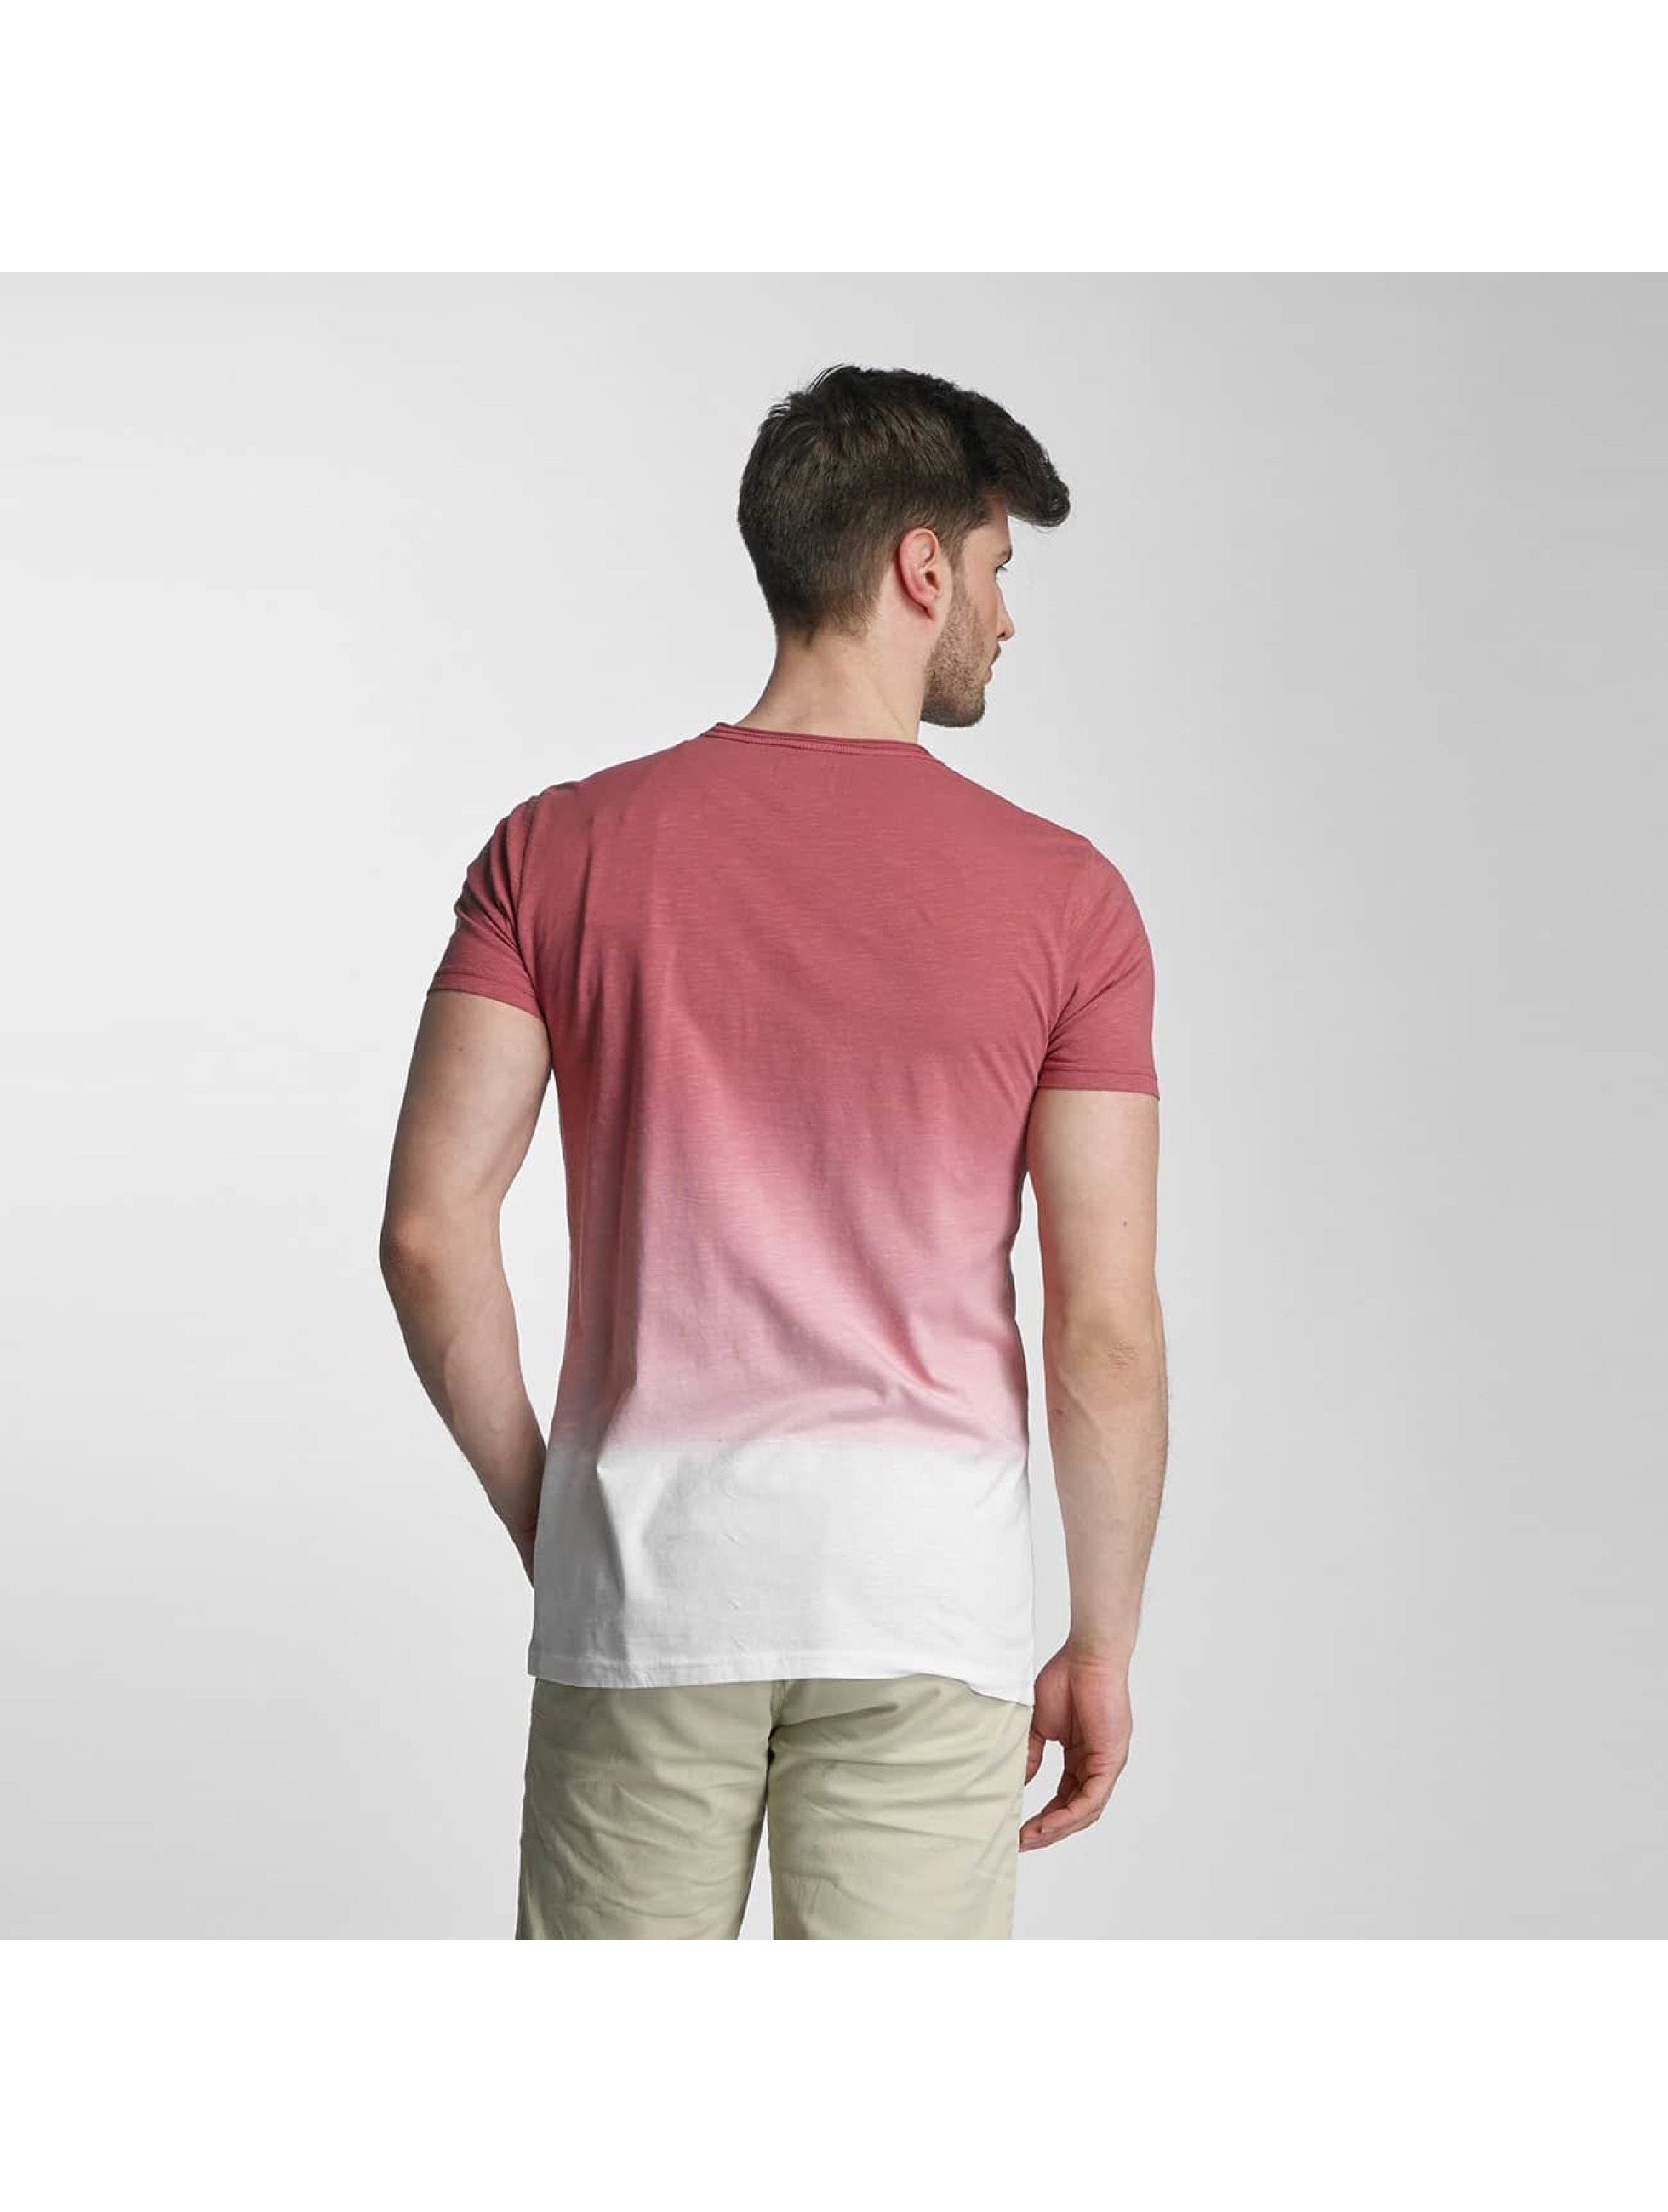 SHINE Original T-Shirt Dip Dyed rosa